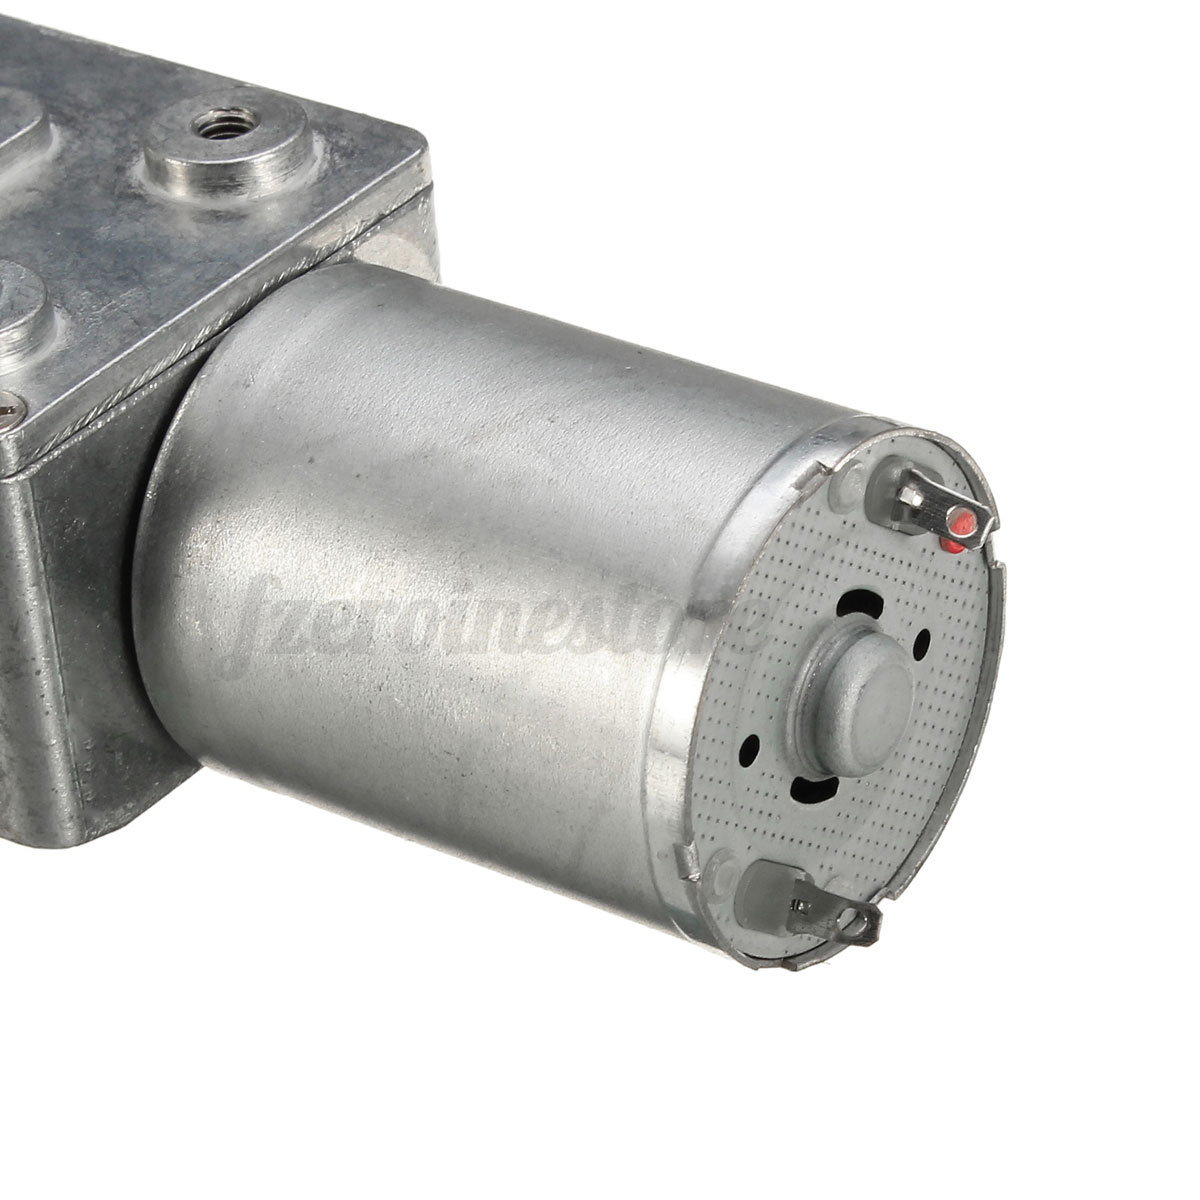 High torque electric power turbo worm geared motor dc for High torque dc motor